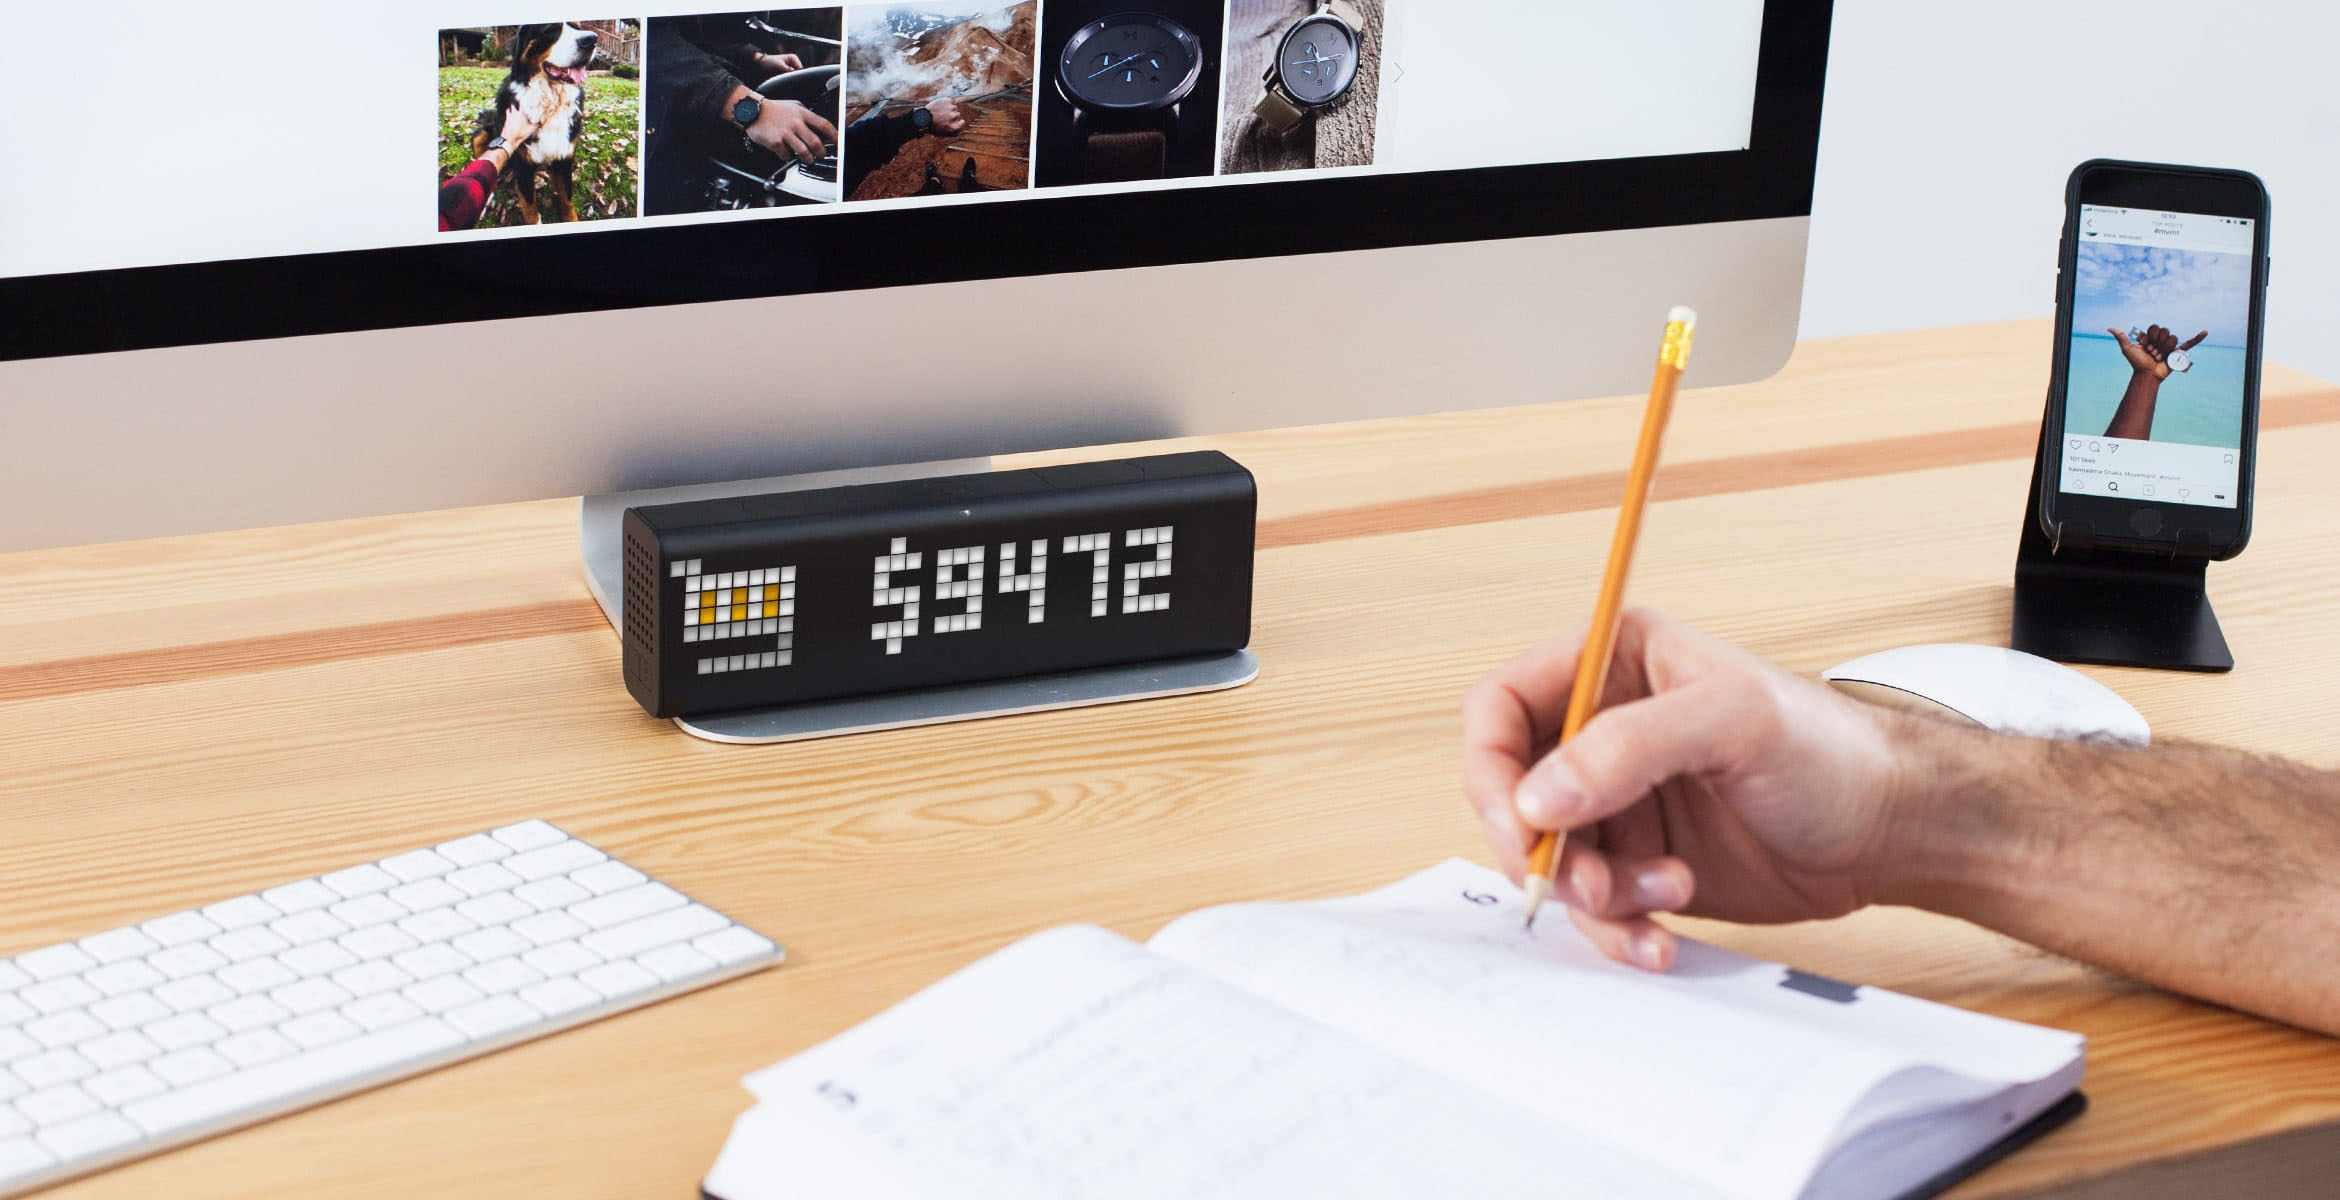 LaMetric Time smart clock complements the desk setup and displays revenue of the e-commerce watch store